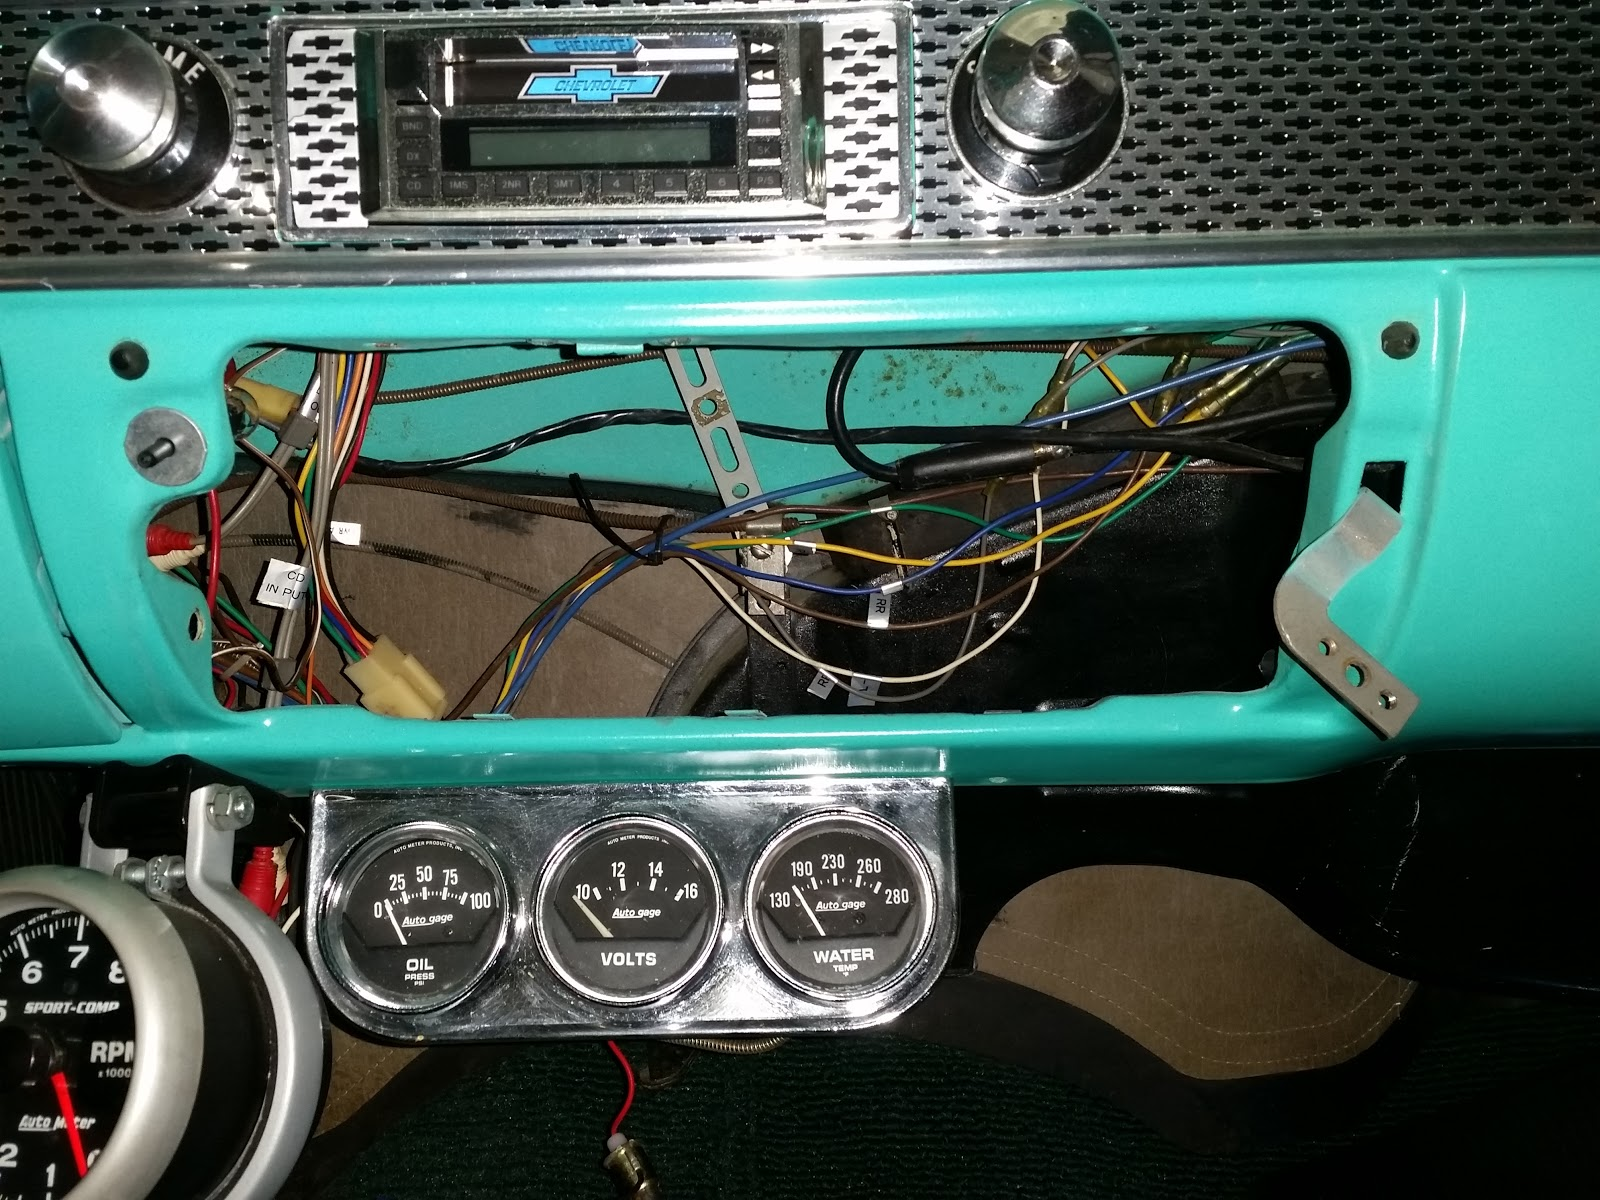 1955 Chevy Heater Core Diagram Schematic Diagrams Ford F100 Bel Air Rebirth October 2015 Control Valve